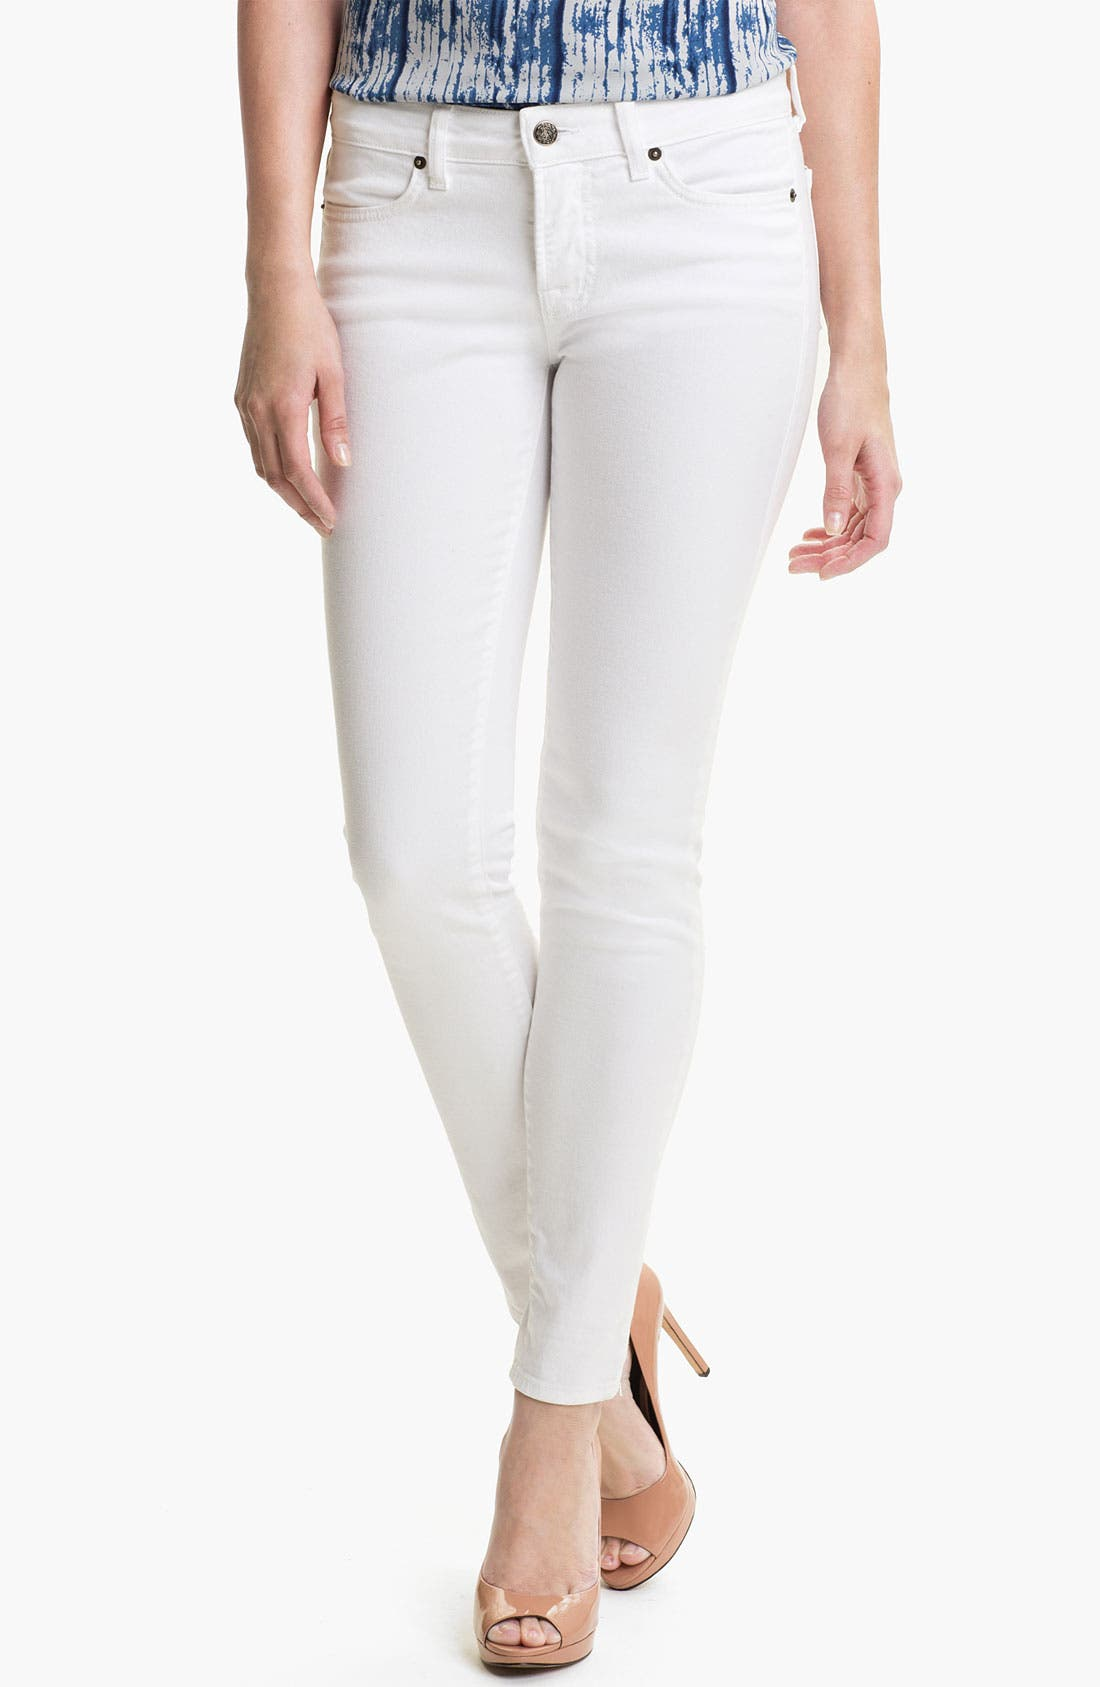 Alternate Image 1 Selected - Blue Essence Color Skinny Jeans (Nordstrom Exclusive)